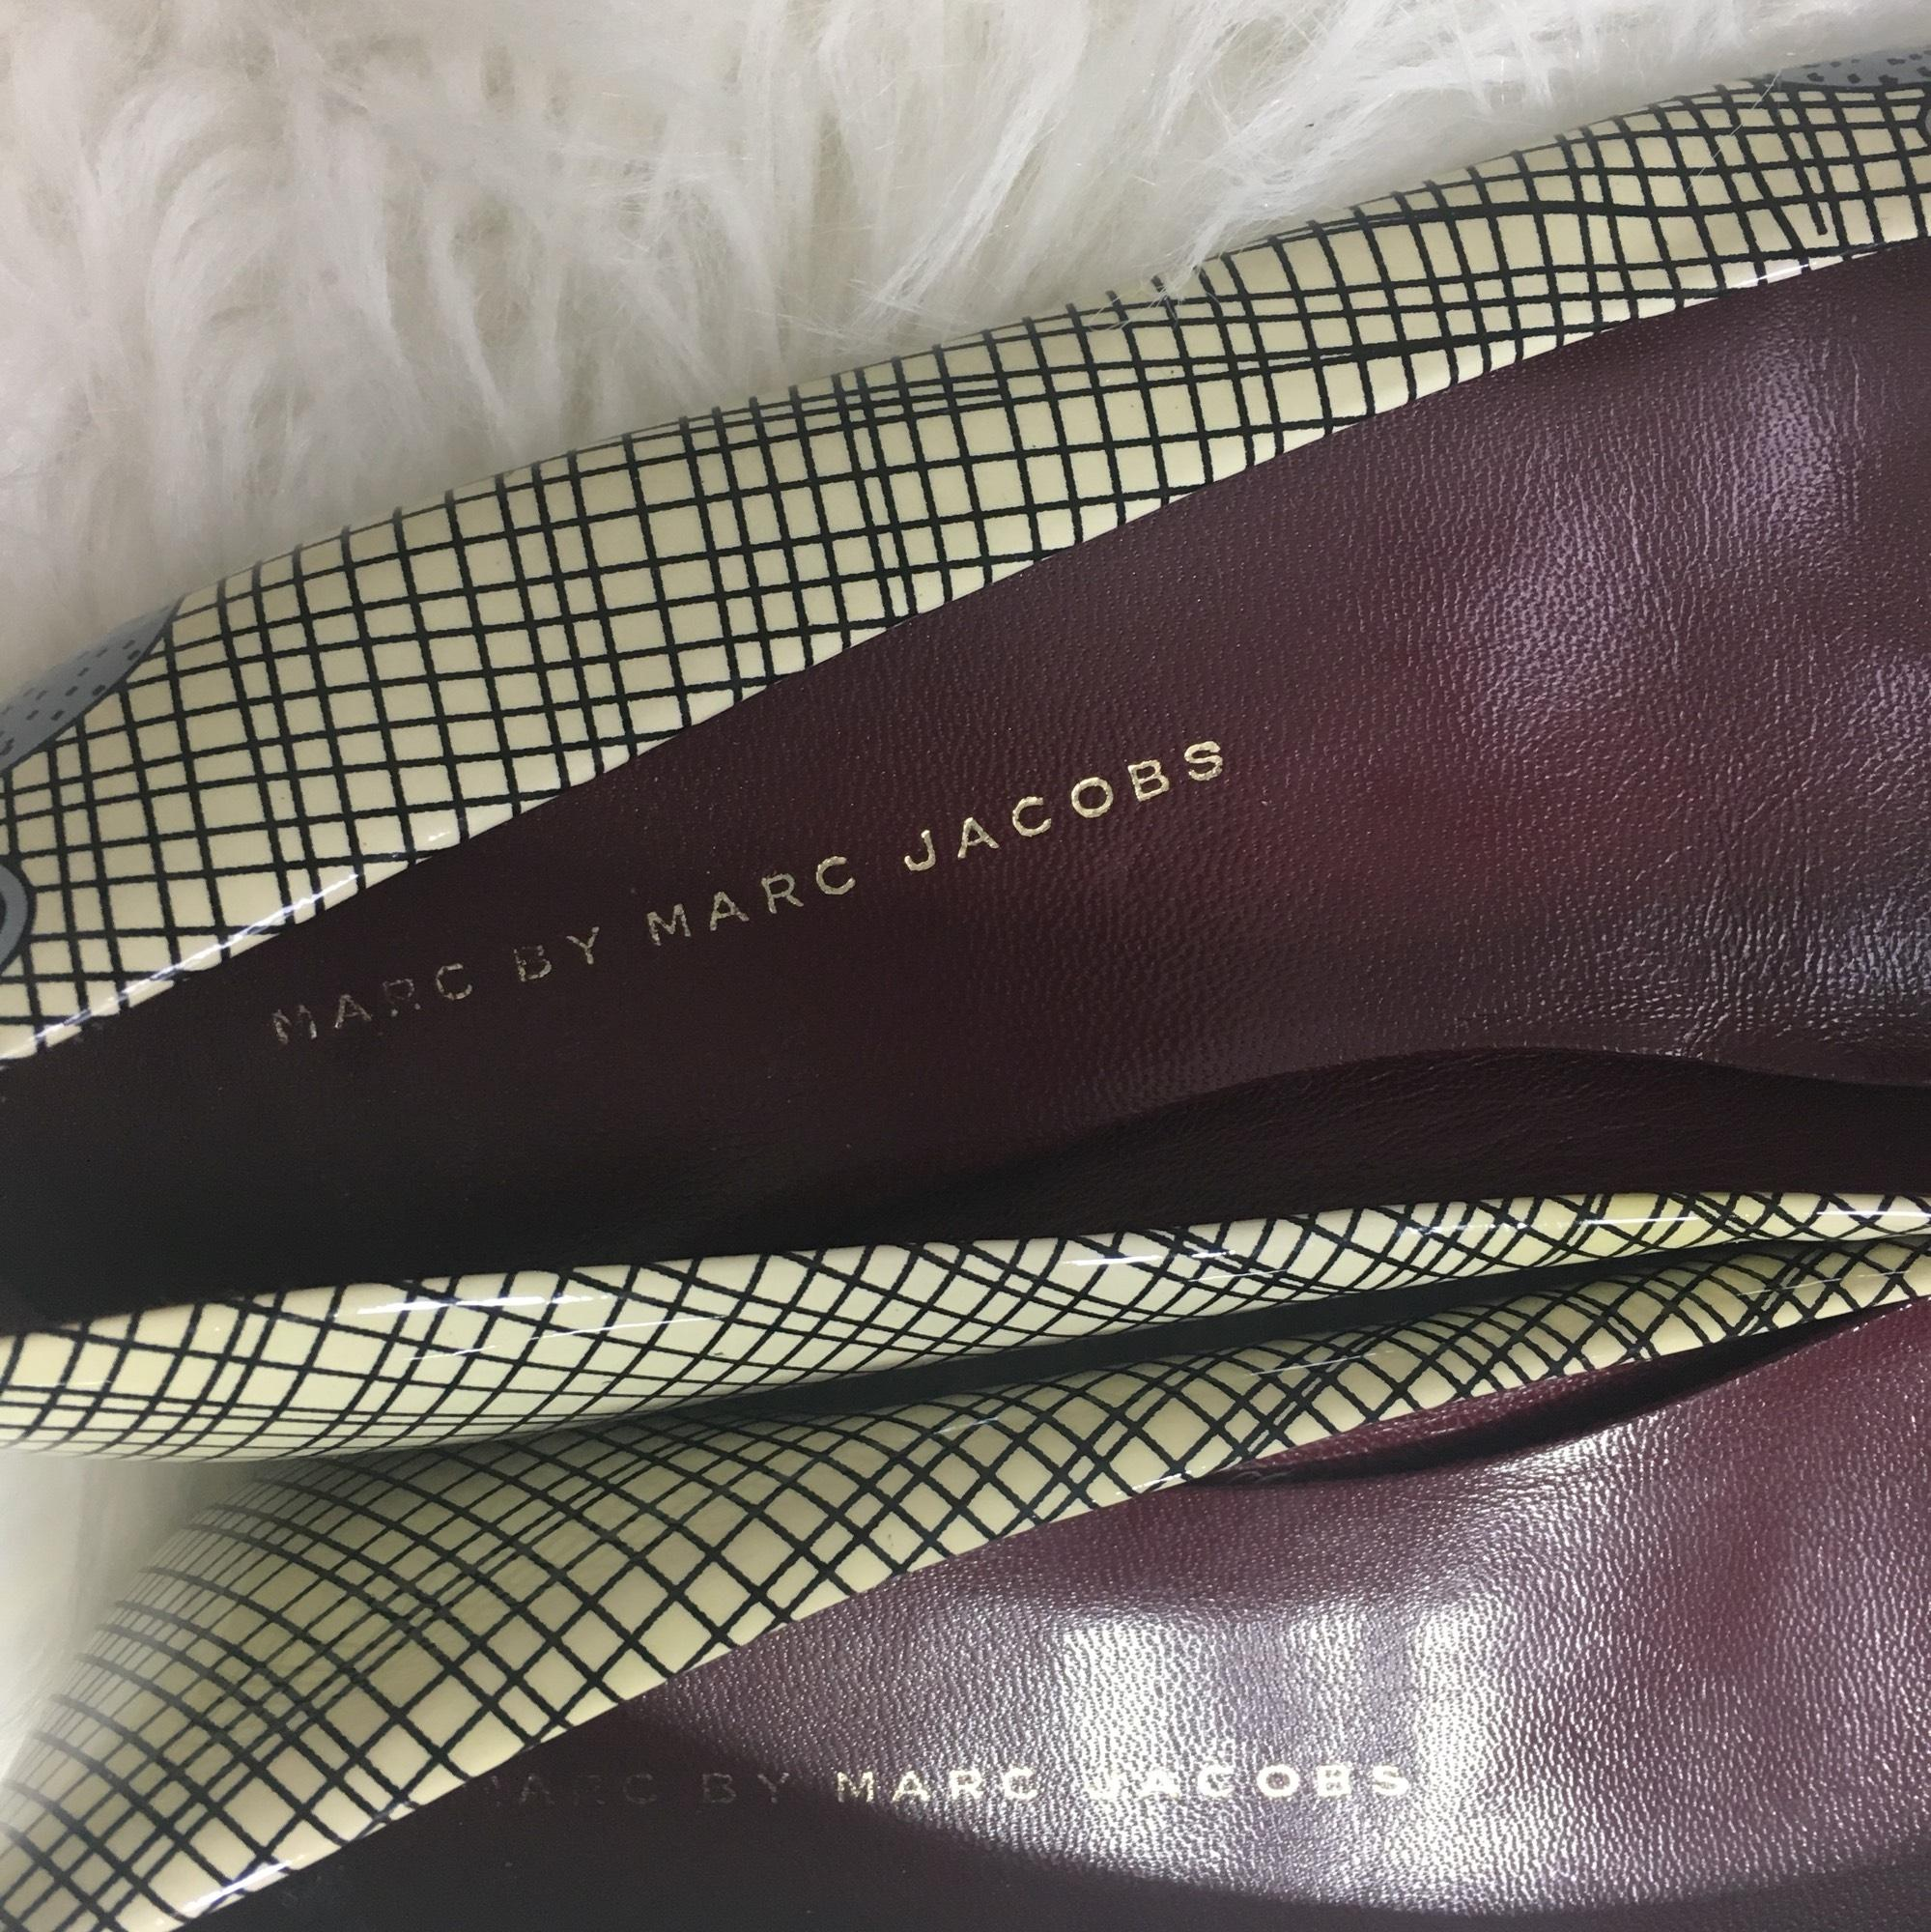 58e9185ebc32 ... Marc Jacobs Miss Flats Size US US US 6.5 Regular (M